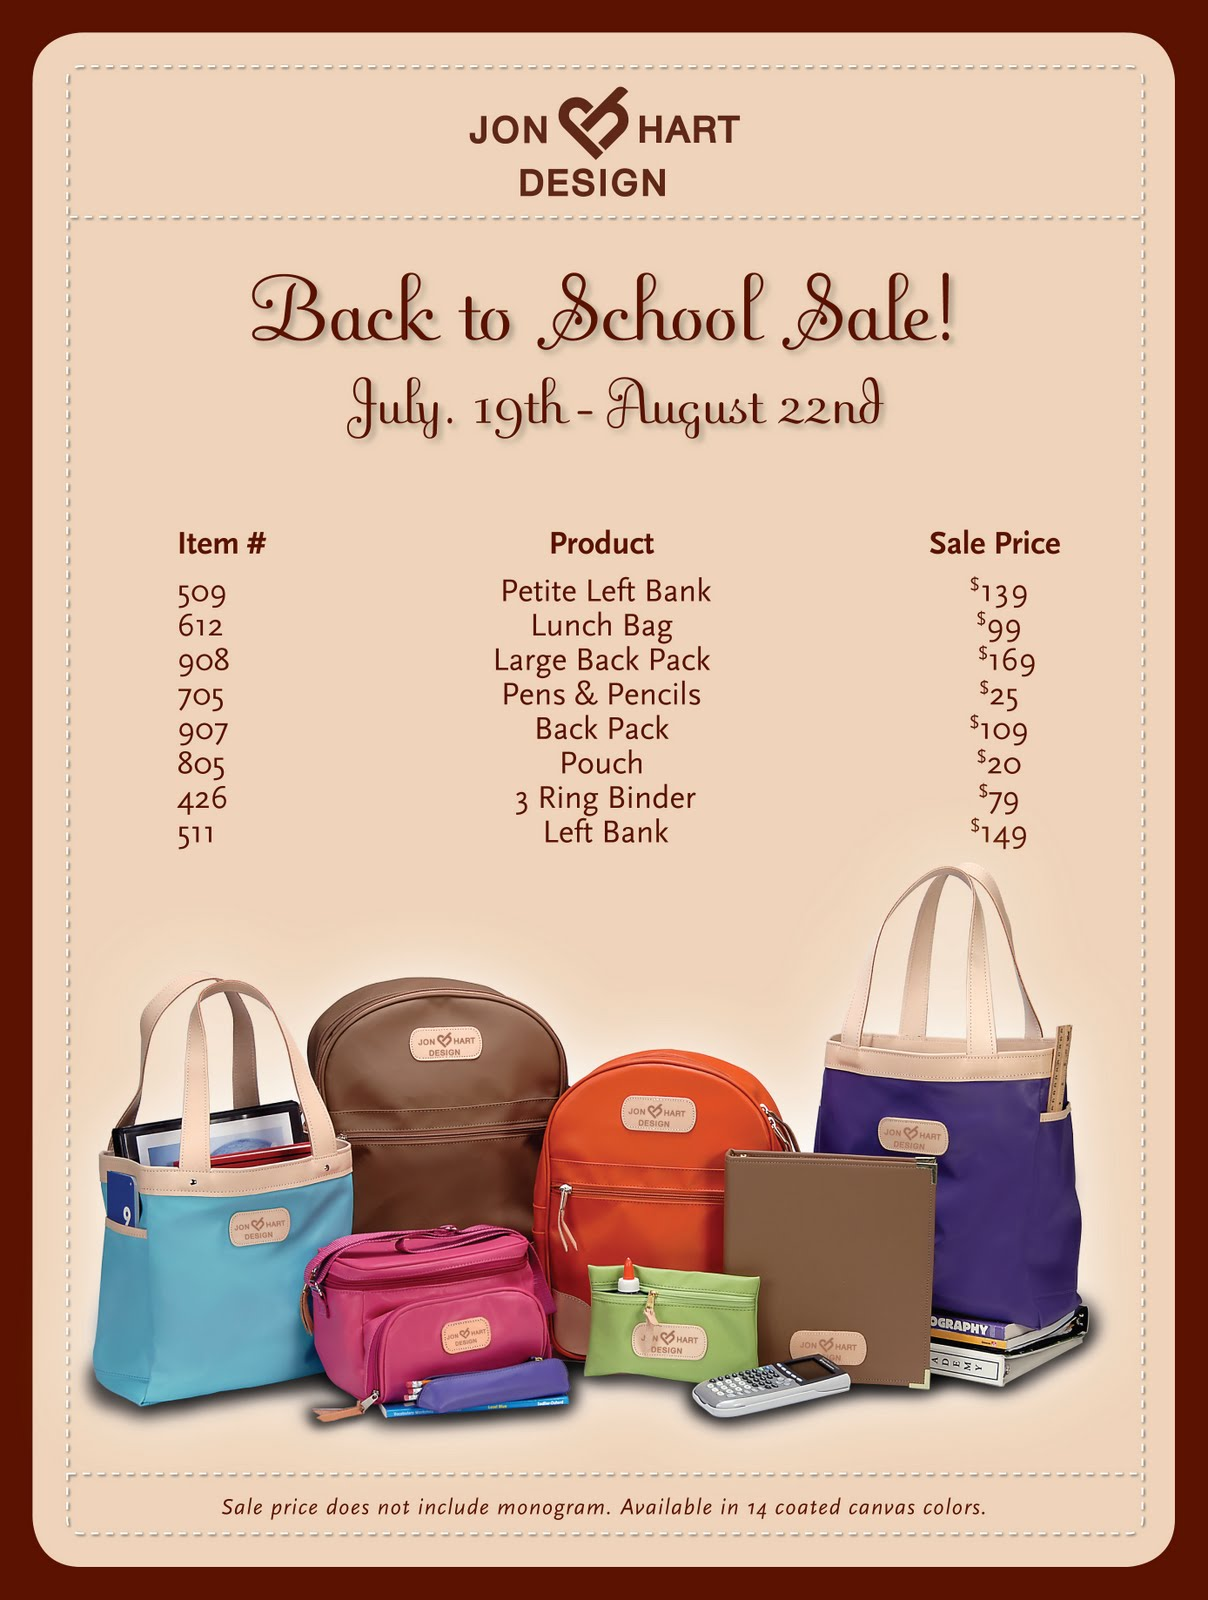 Jon Hart Obsession With The Back To School We Have A Great Selection Of Samples In So You Can See Quality This Usa Made Product